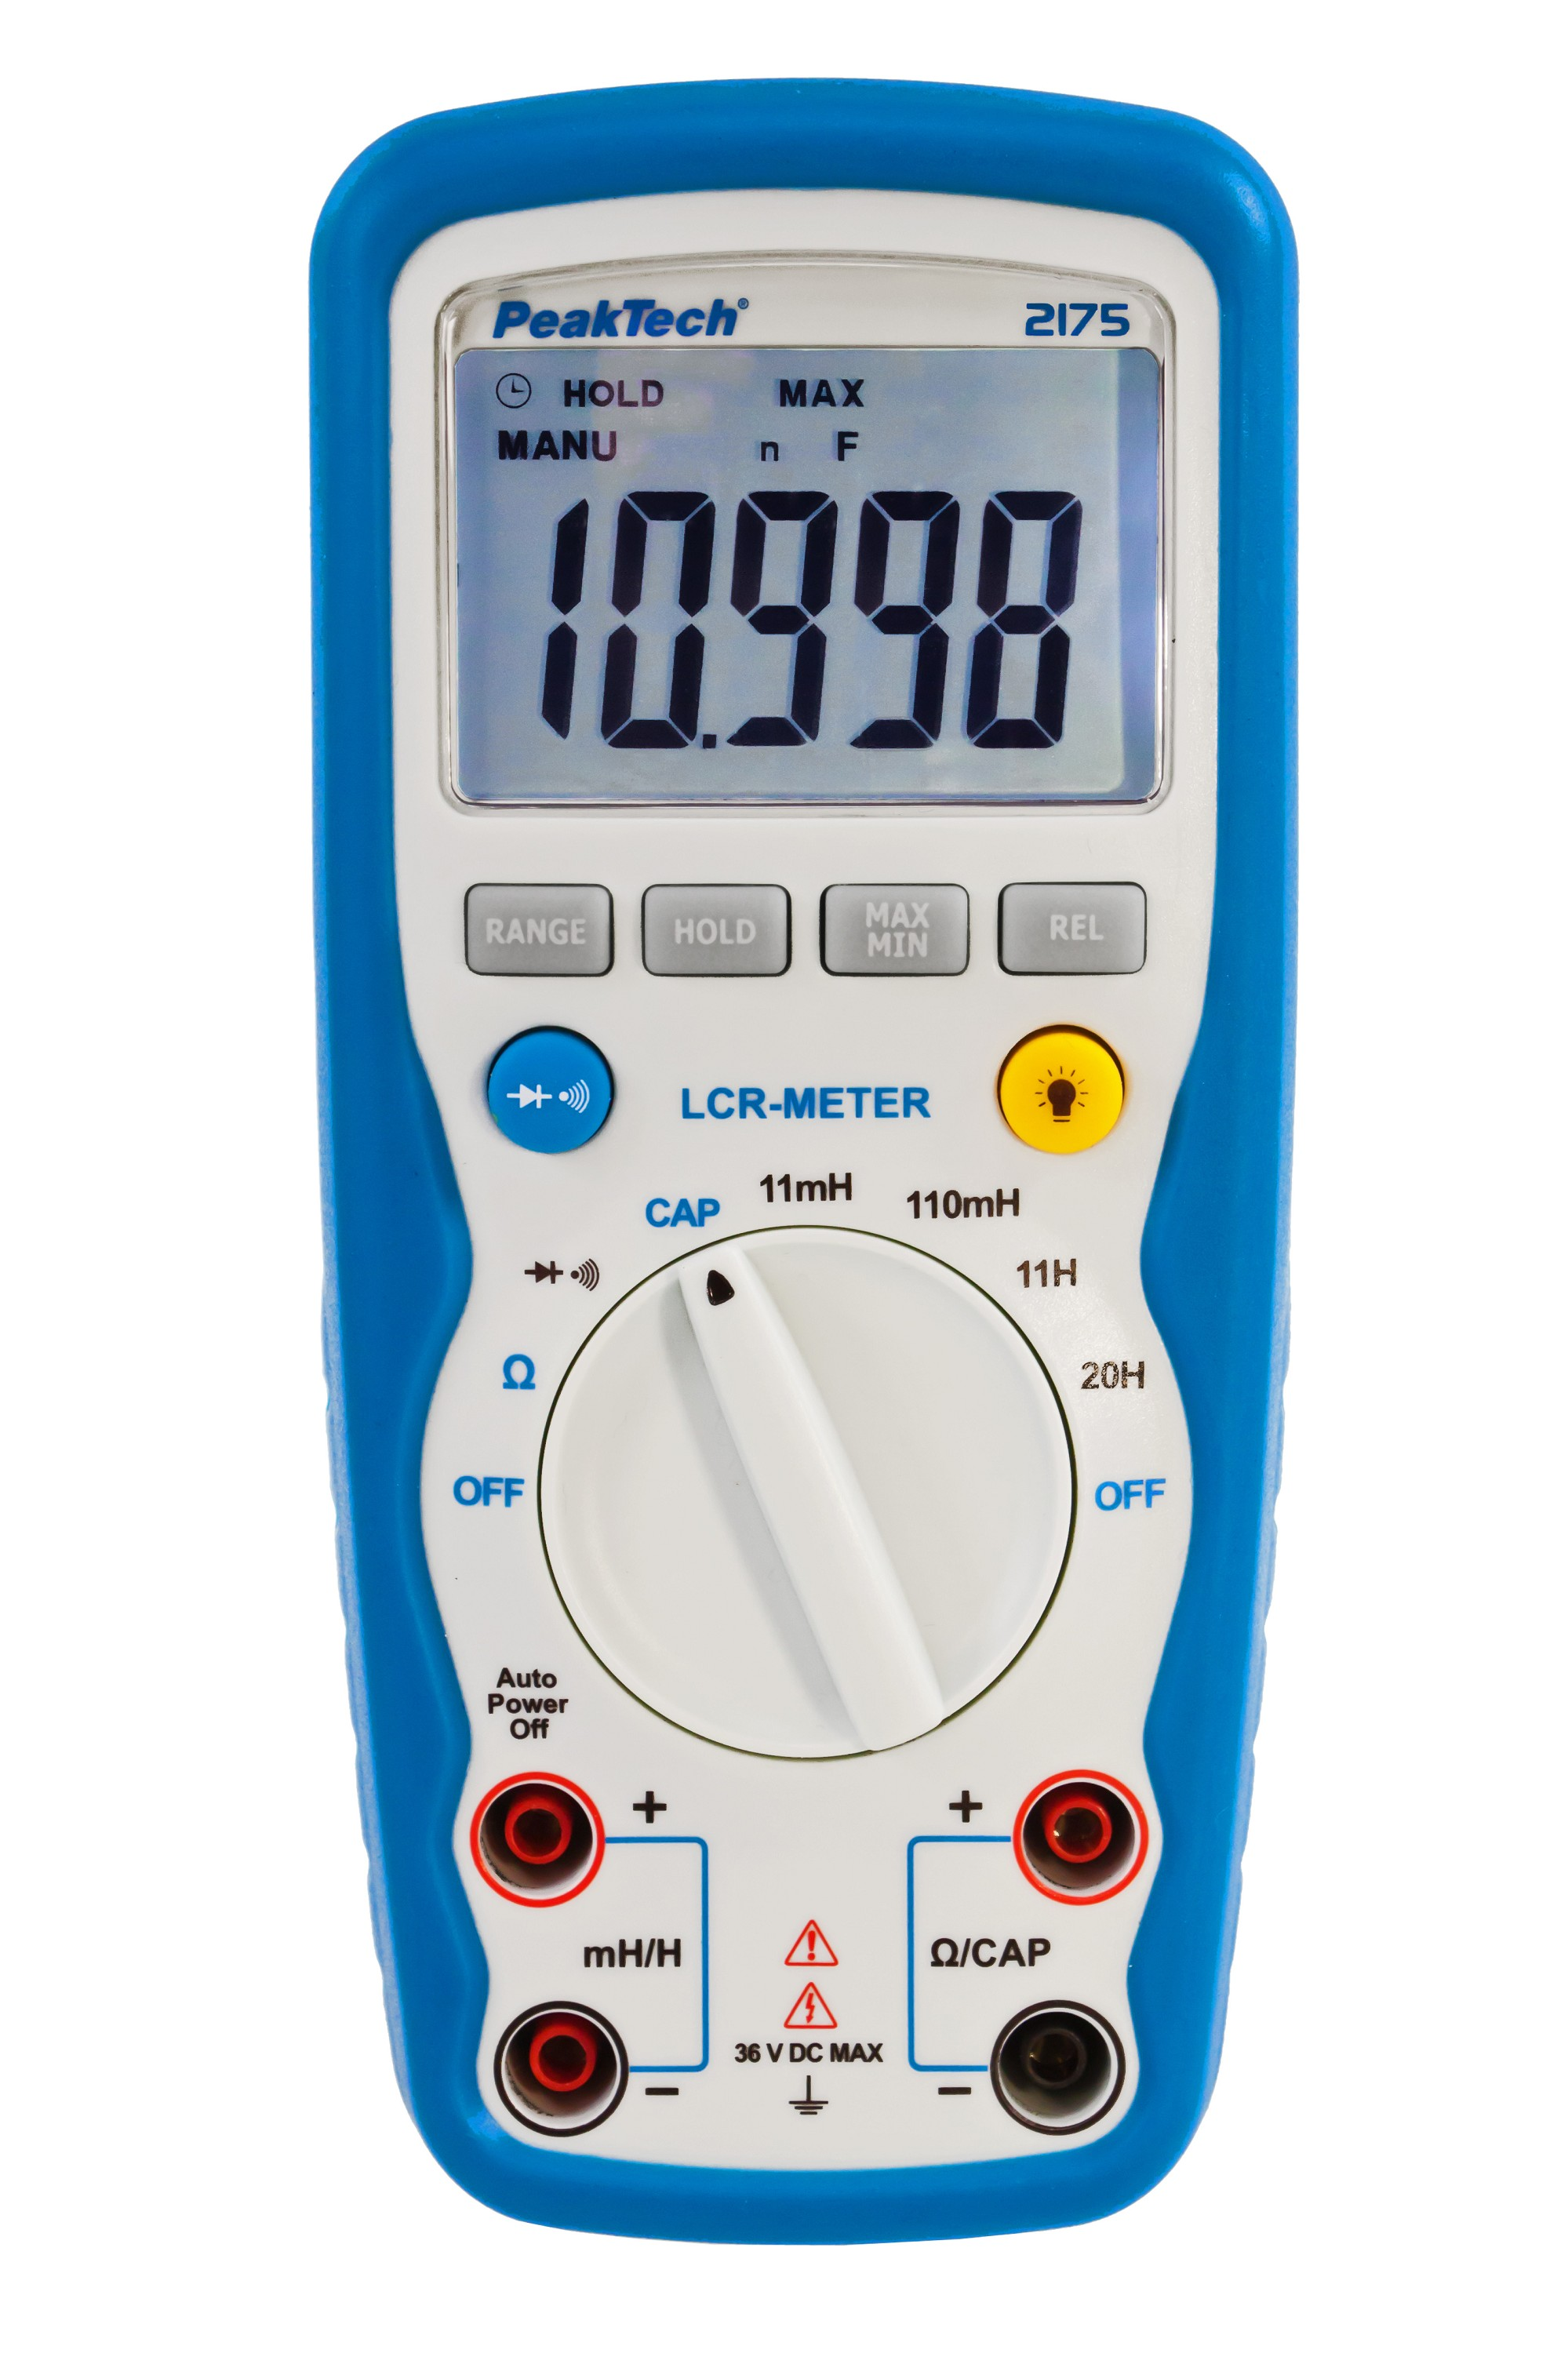 «PeakTech® P 2175» LCR-Meter, 11000 Counts, 20H, 110 mF, 20 MΩ